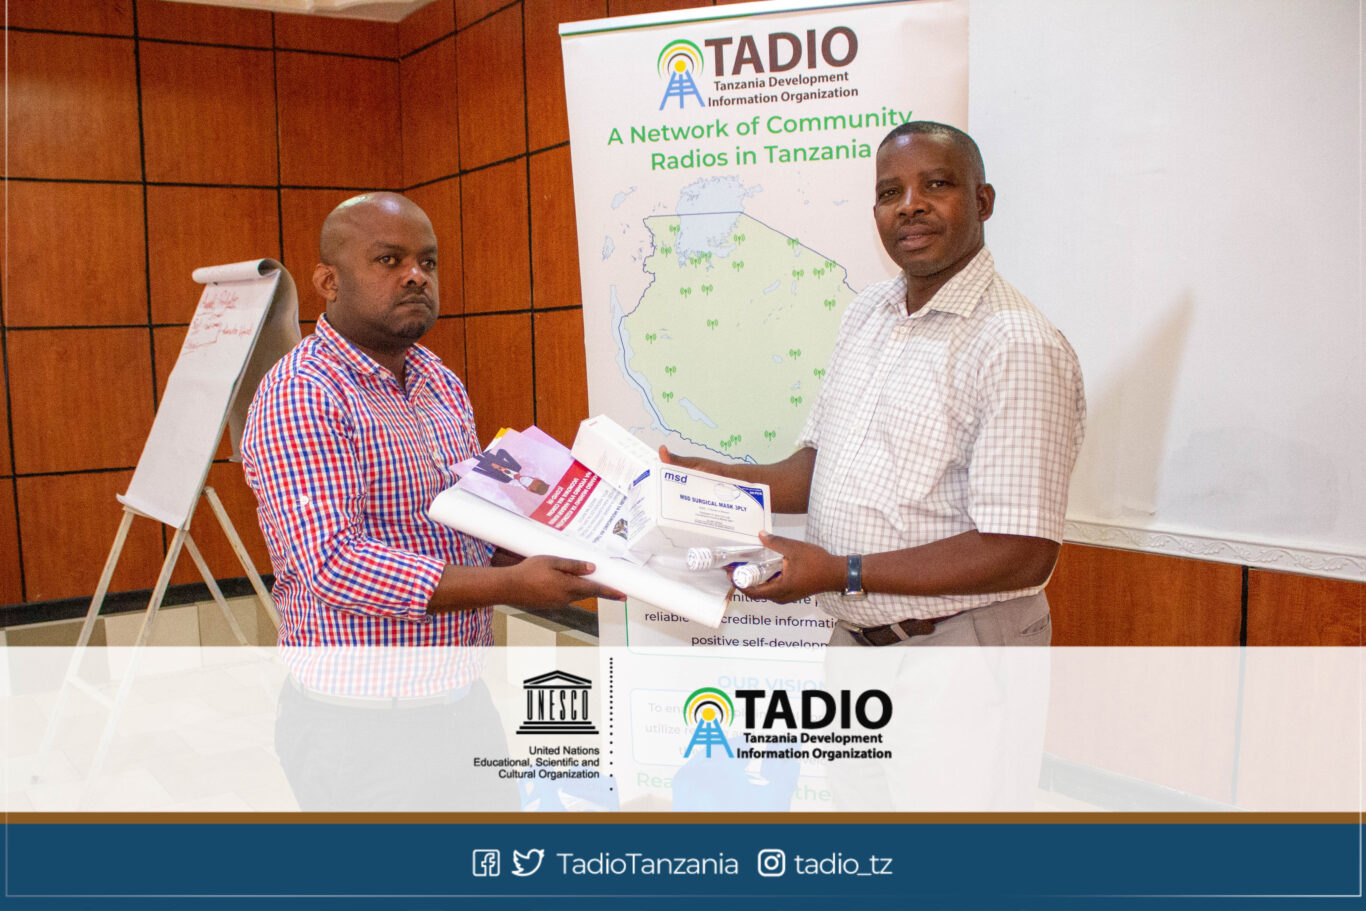 Nuru FM Manager, Mr. Victor Chakudika receiving health protection equipment from TADIO Chairperson, Mr. Prosper Kwigize